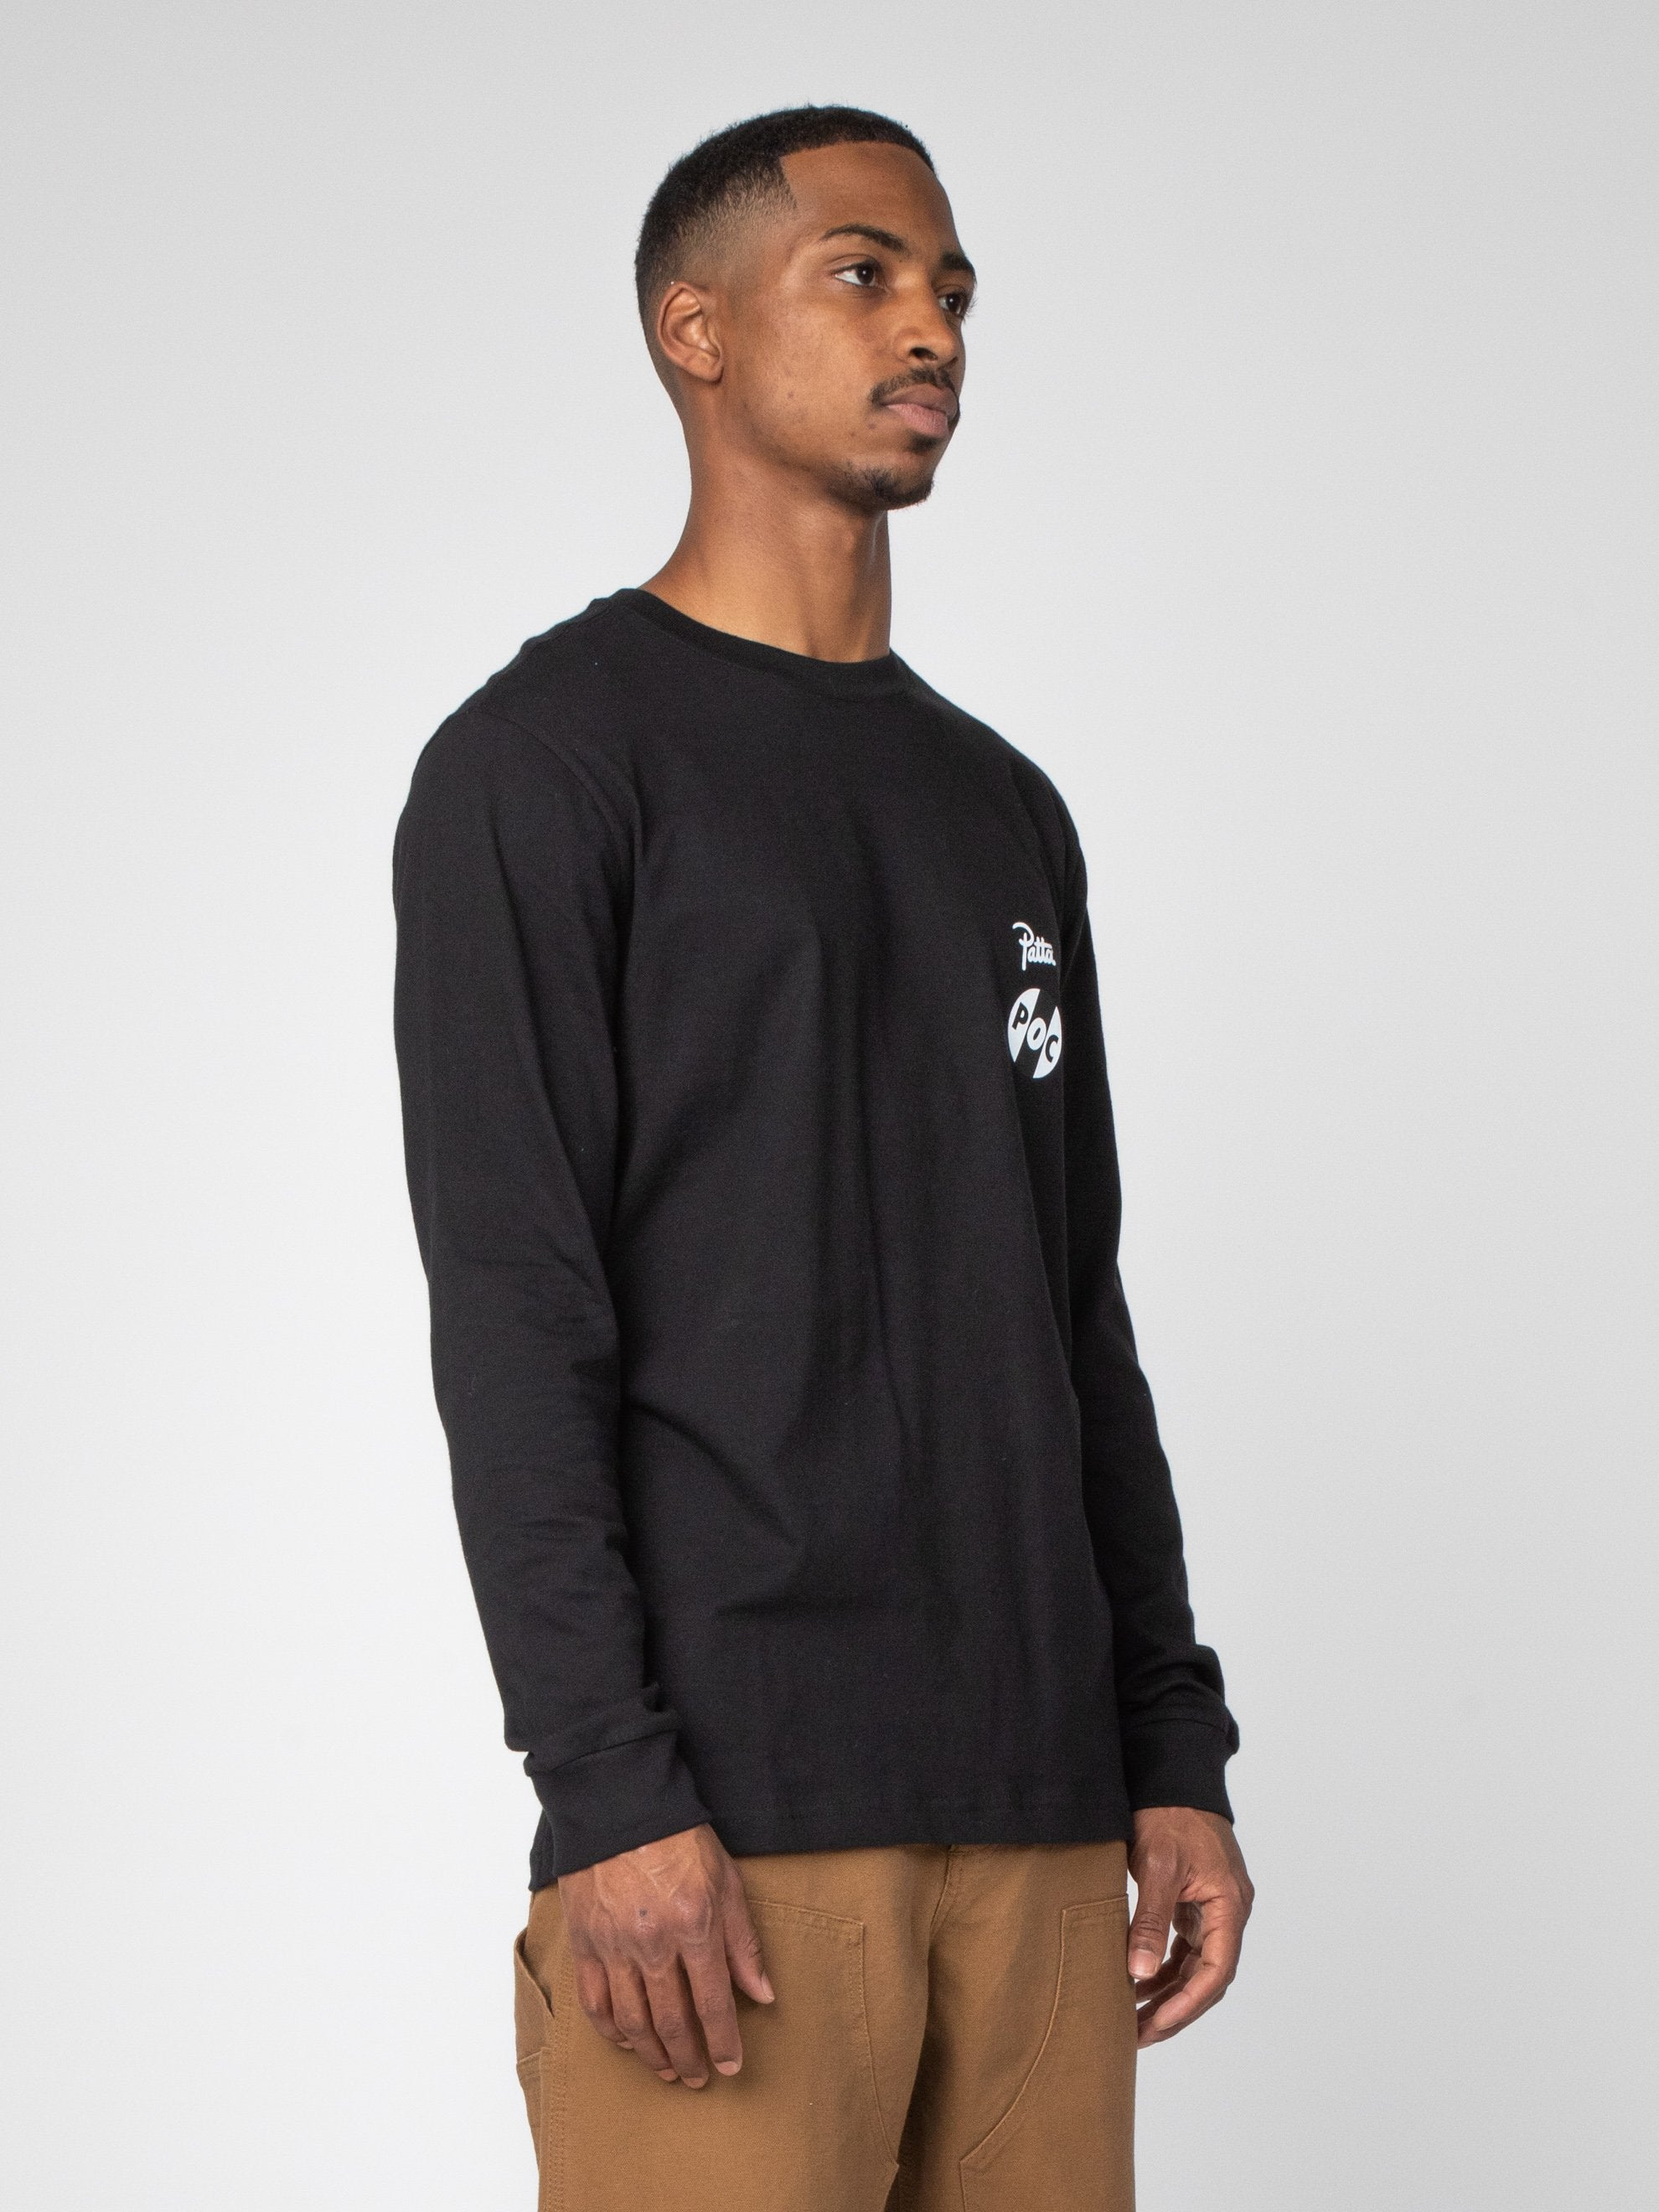 Patta Original Clothing LS T-Shirt